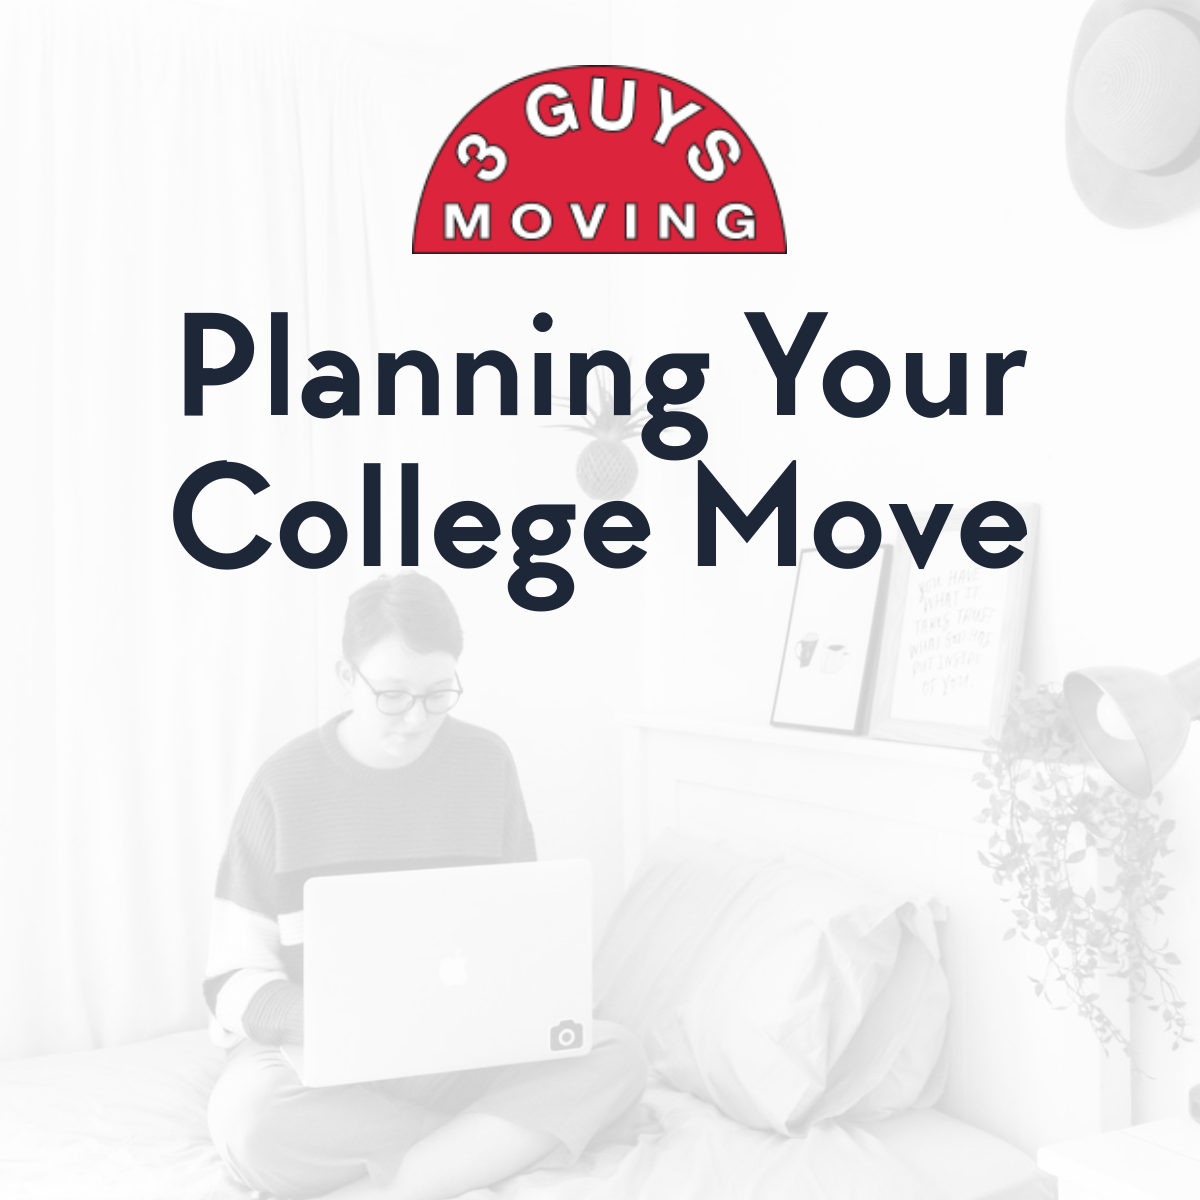 Planning Your College Move - Planning Your College Move